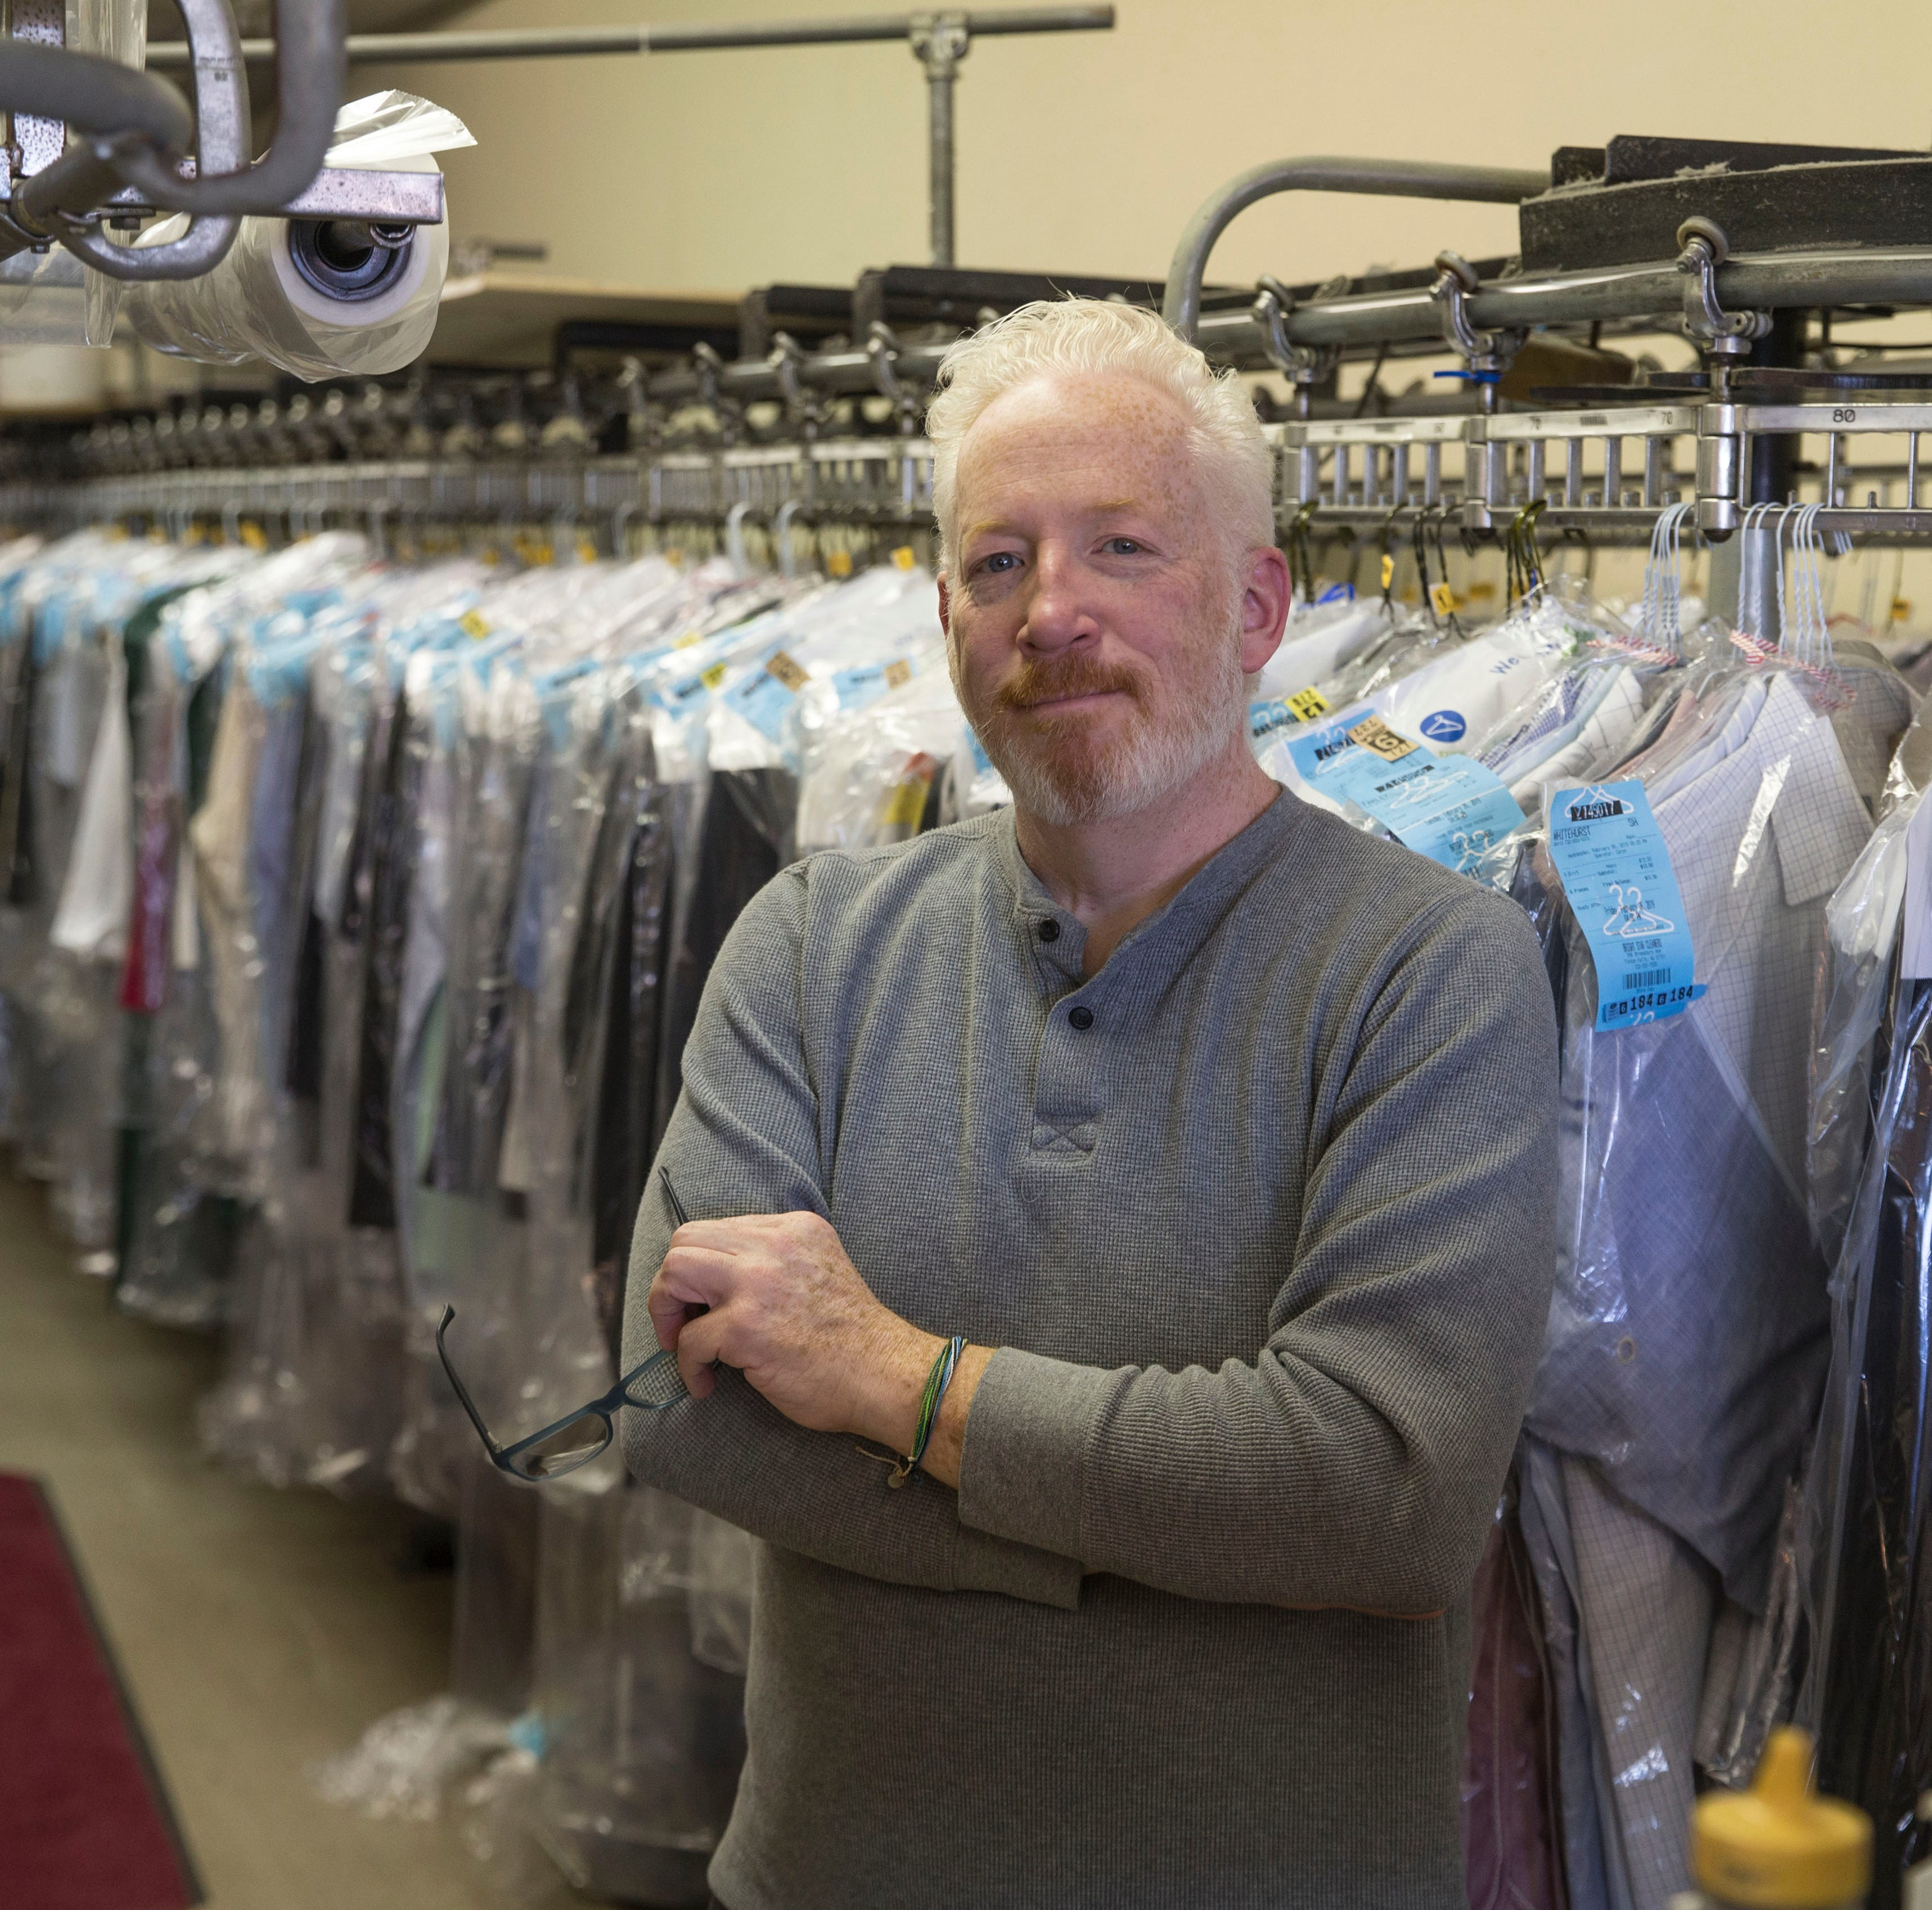 Owner of Bright Star Cleaners in Tinton Falls took a twisty path